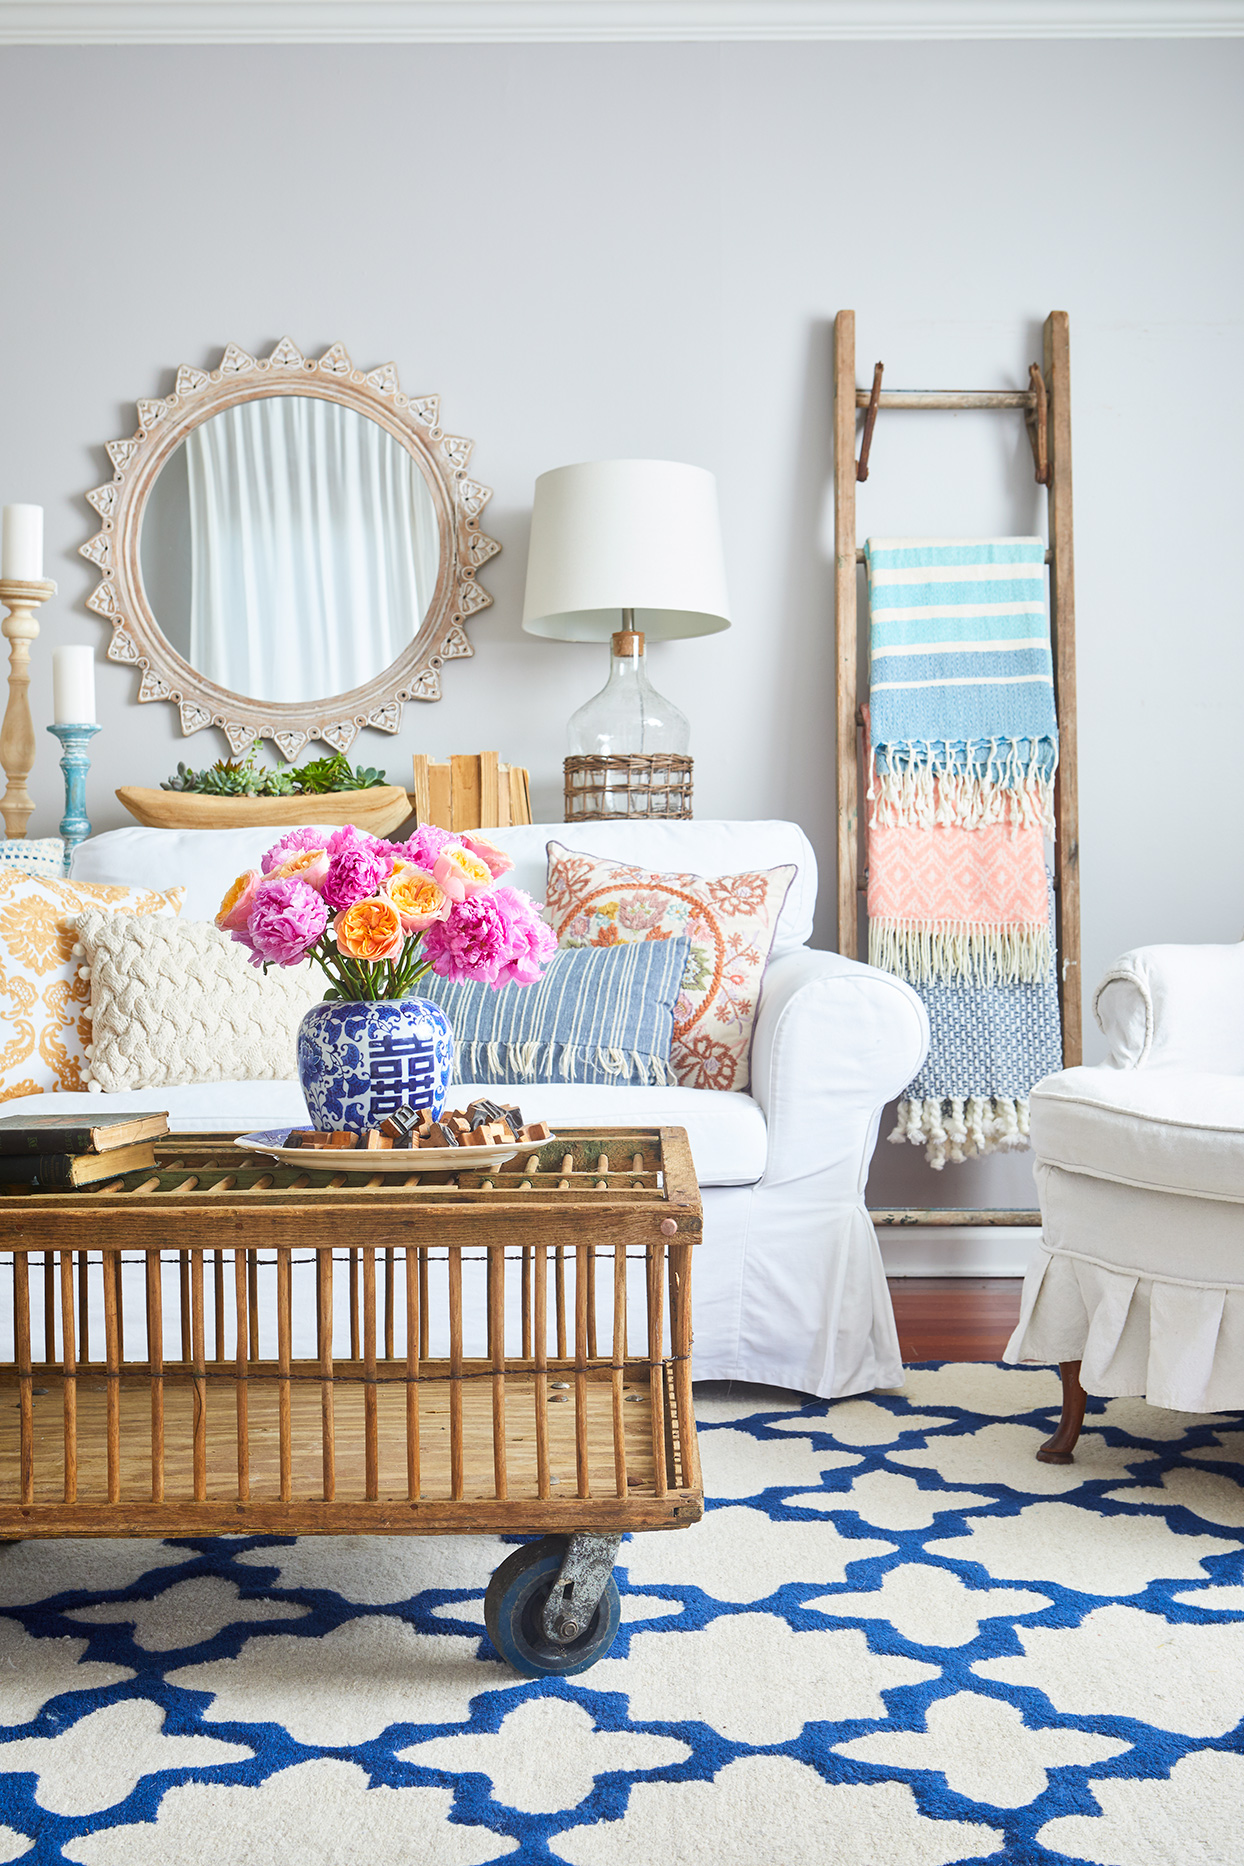 farmhouse style room bright pillows and accents